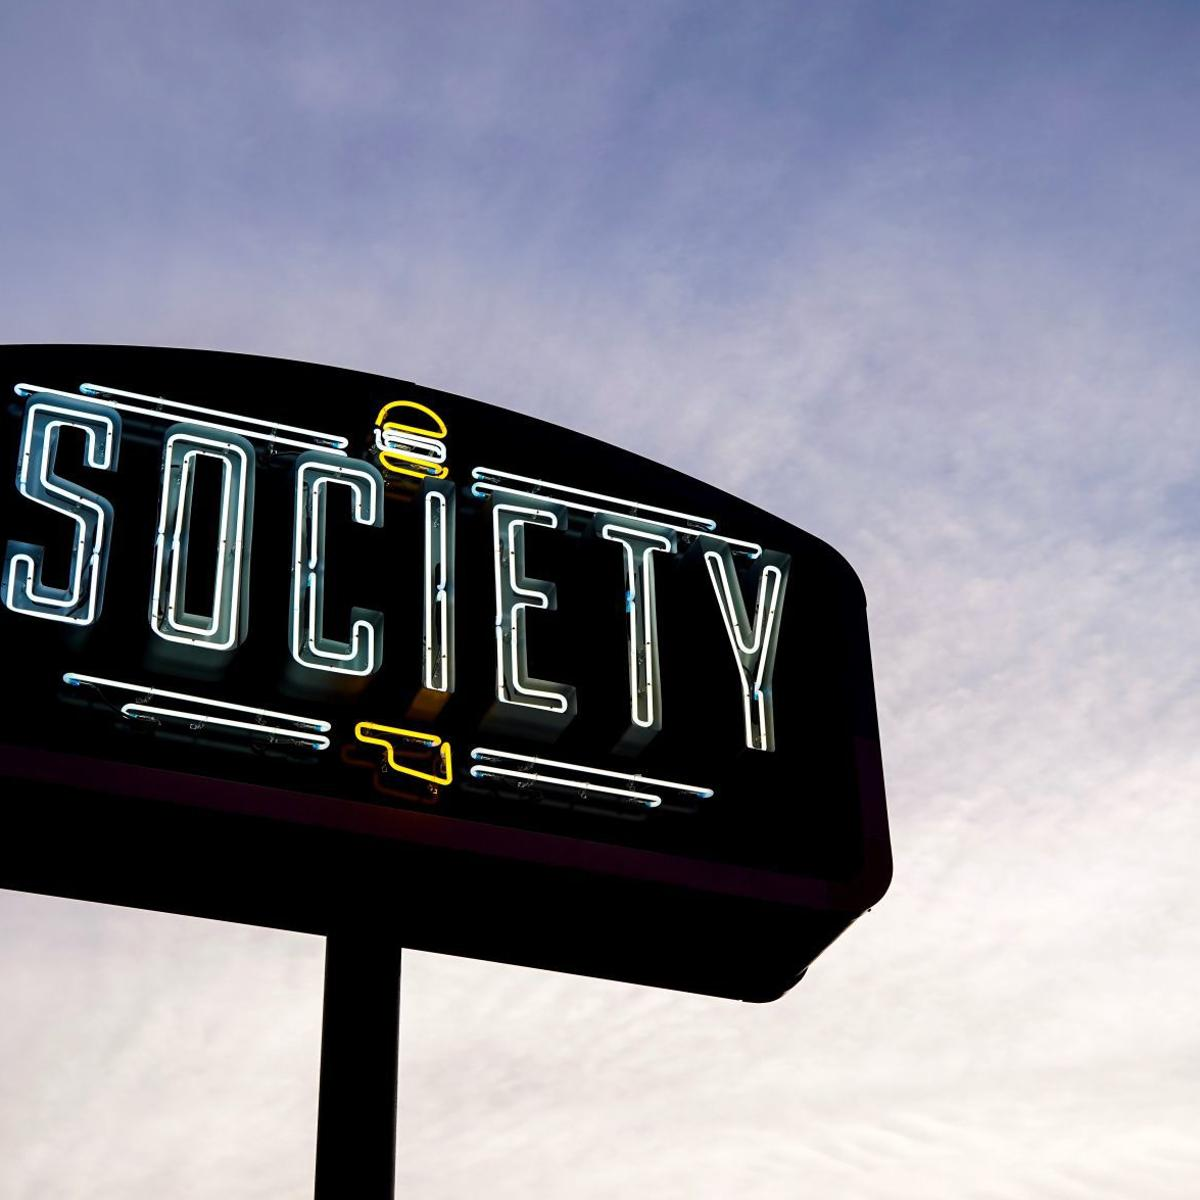 Table Talk: Society, a new burger restaurant, to open Monday